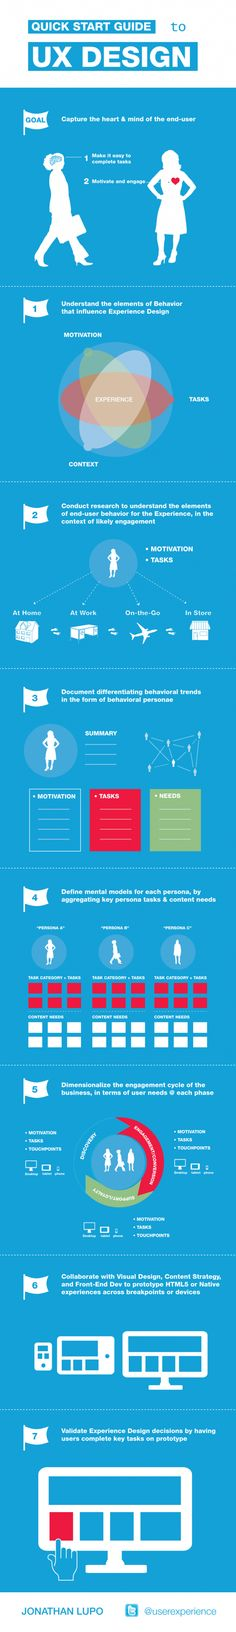 A Quick Start Guide to UX Design Infographic